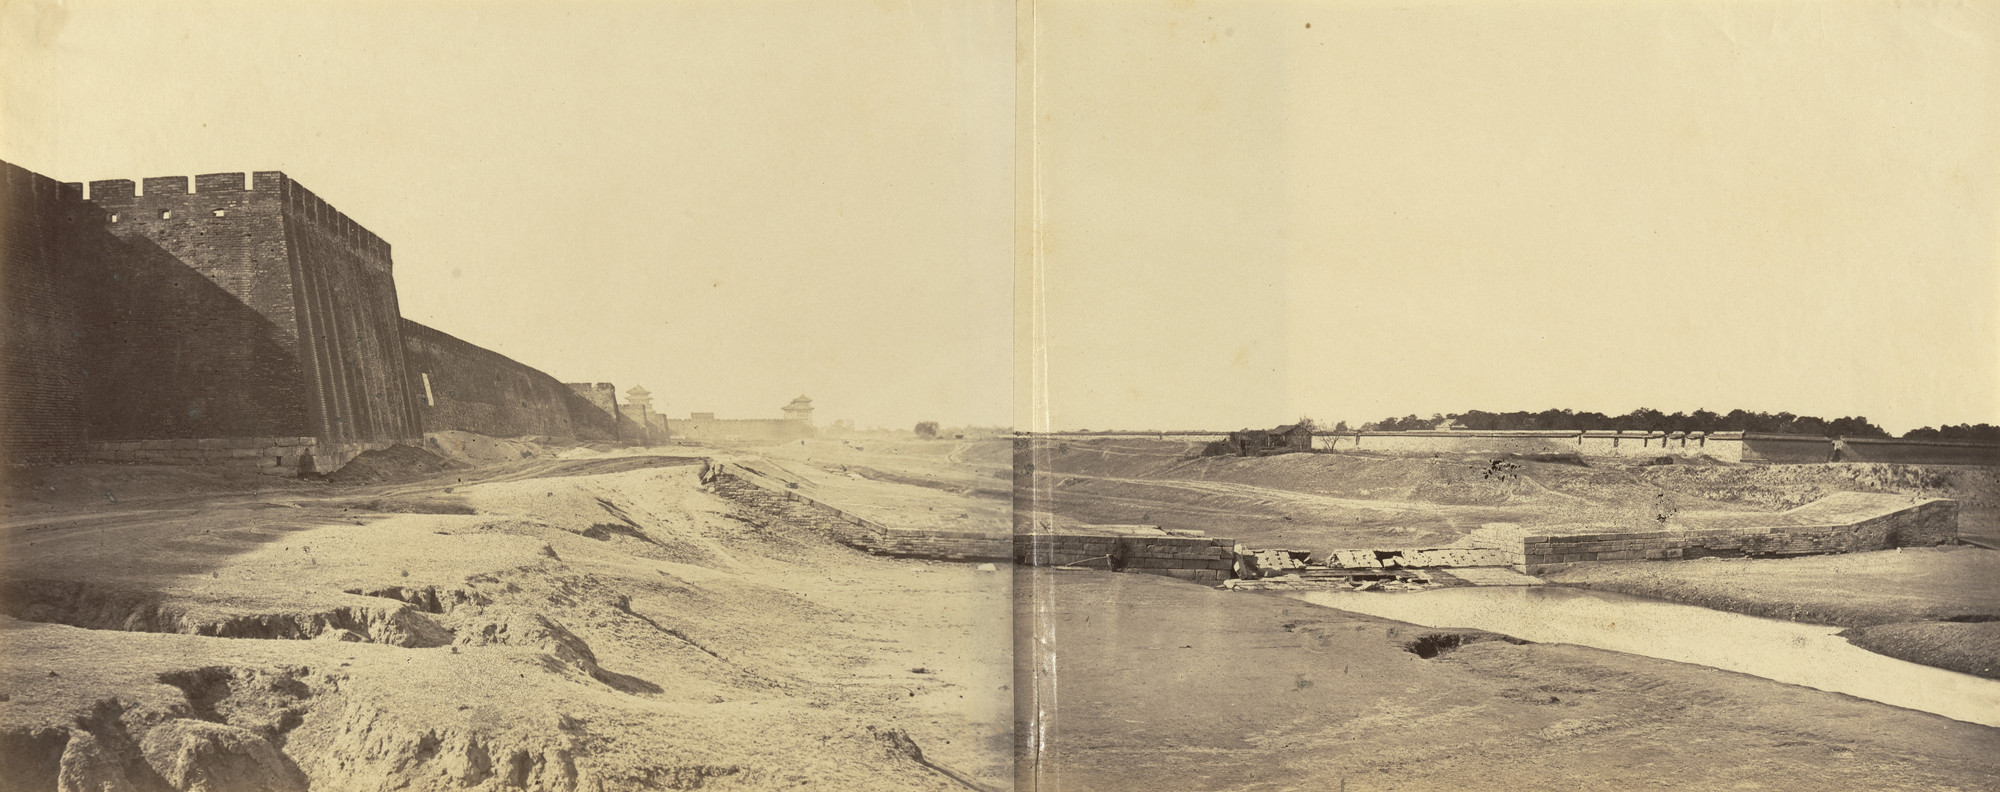 Felice Beato. Position Taken up by the English and French within the Enclosure of the Temple of the Earth Preparatory to Opening Fire on Pekin on 21st October 1860. Also Wall of Pekin and Anting Gate (Gate of Peace) Surrendered to the Allies on the Same Date,. 1860